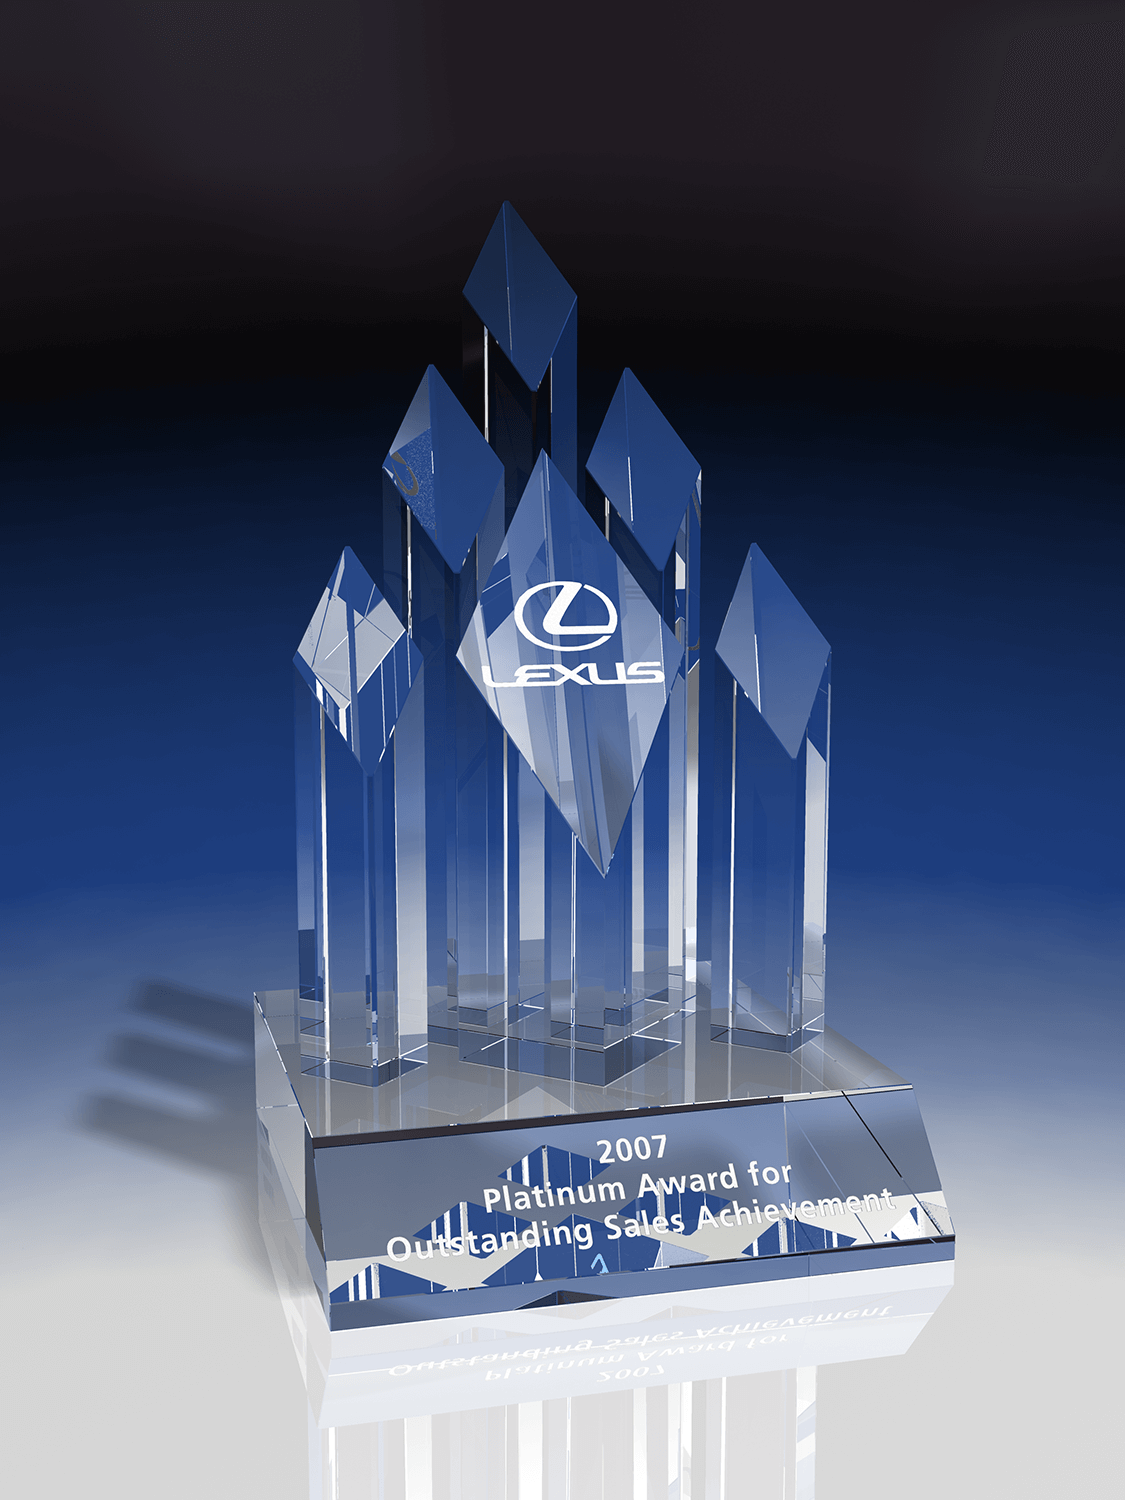 unique-premium-customized-crystal-award-trophy-corporate-appreciation-award-north-america_pinnacle